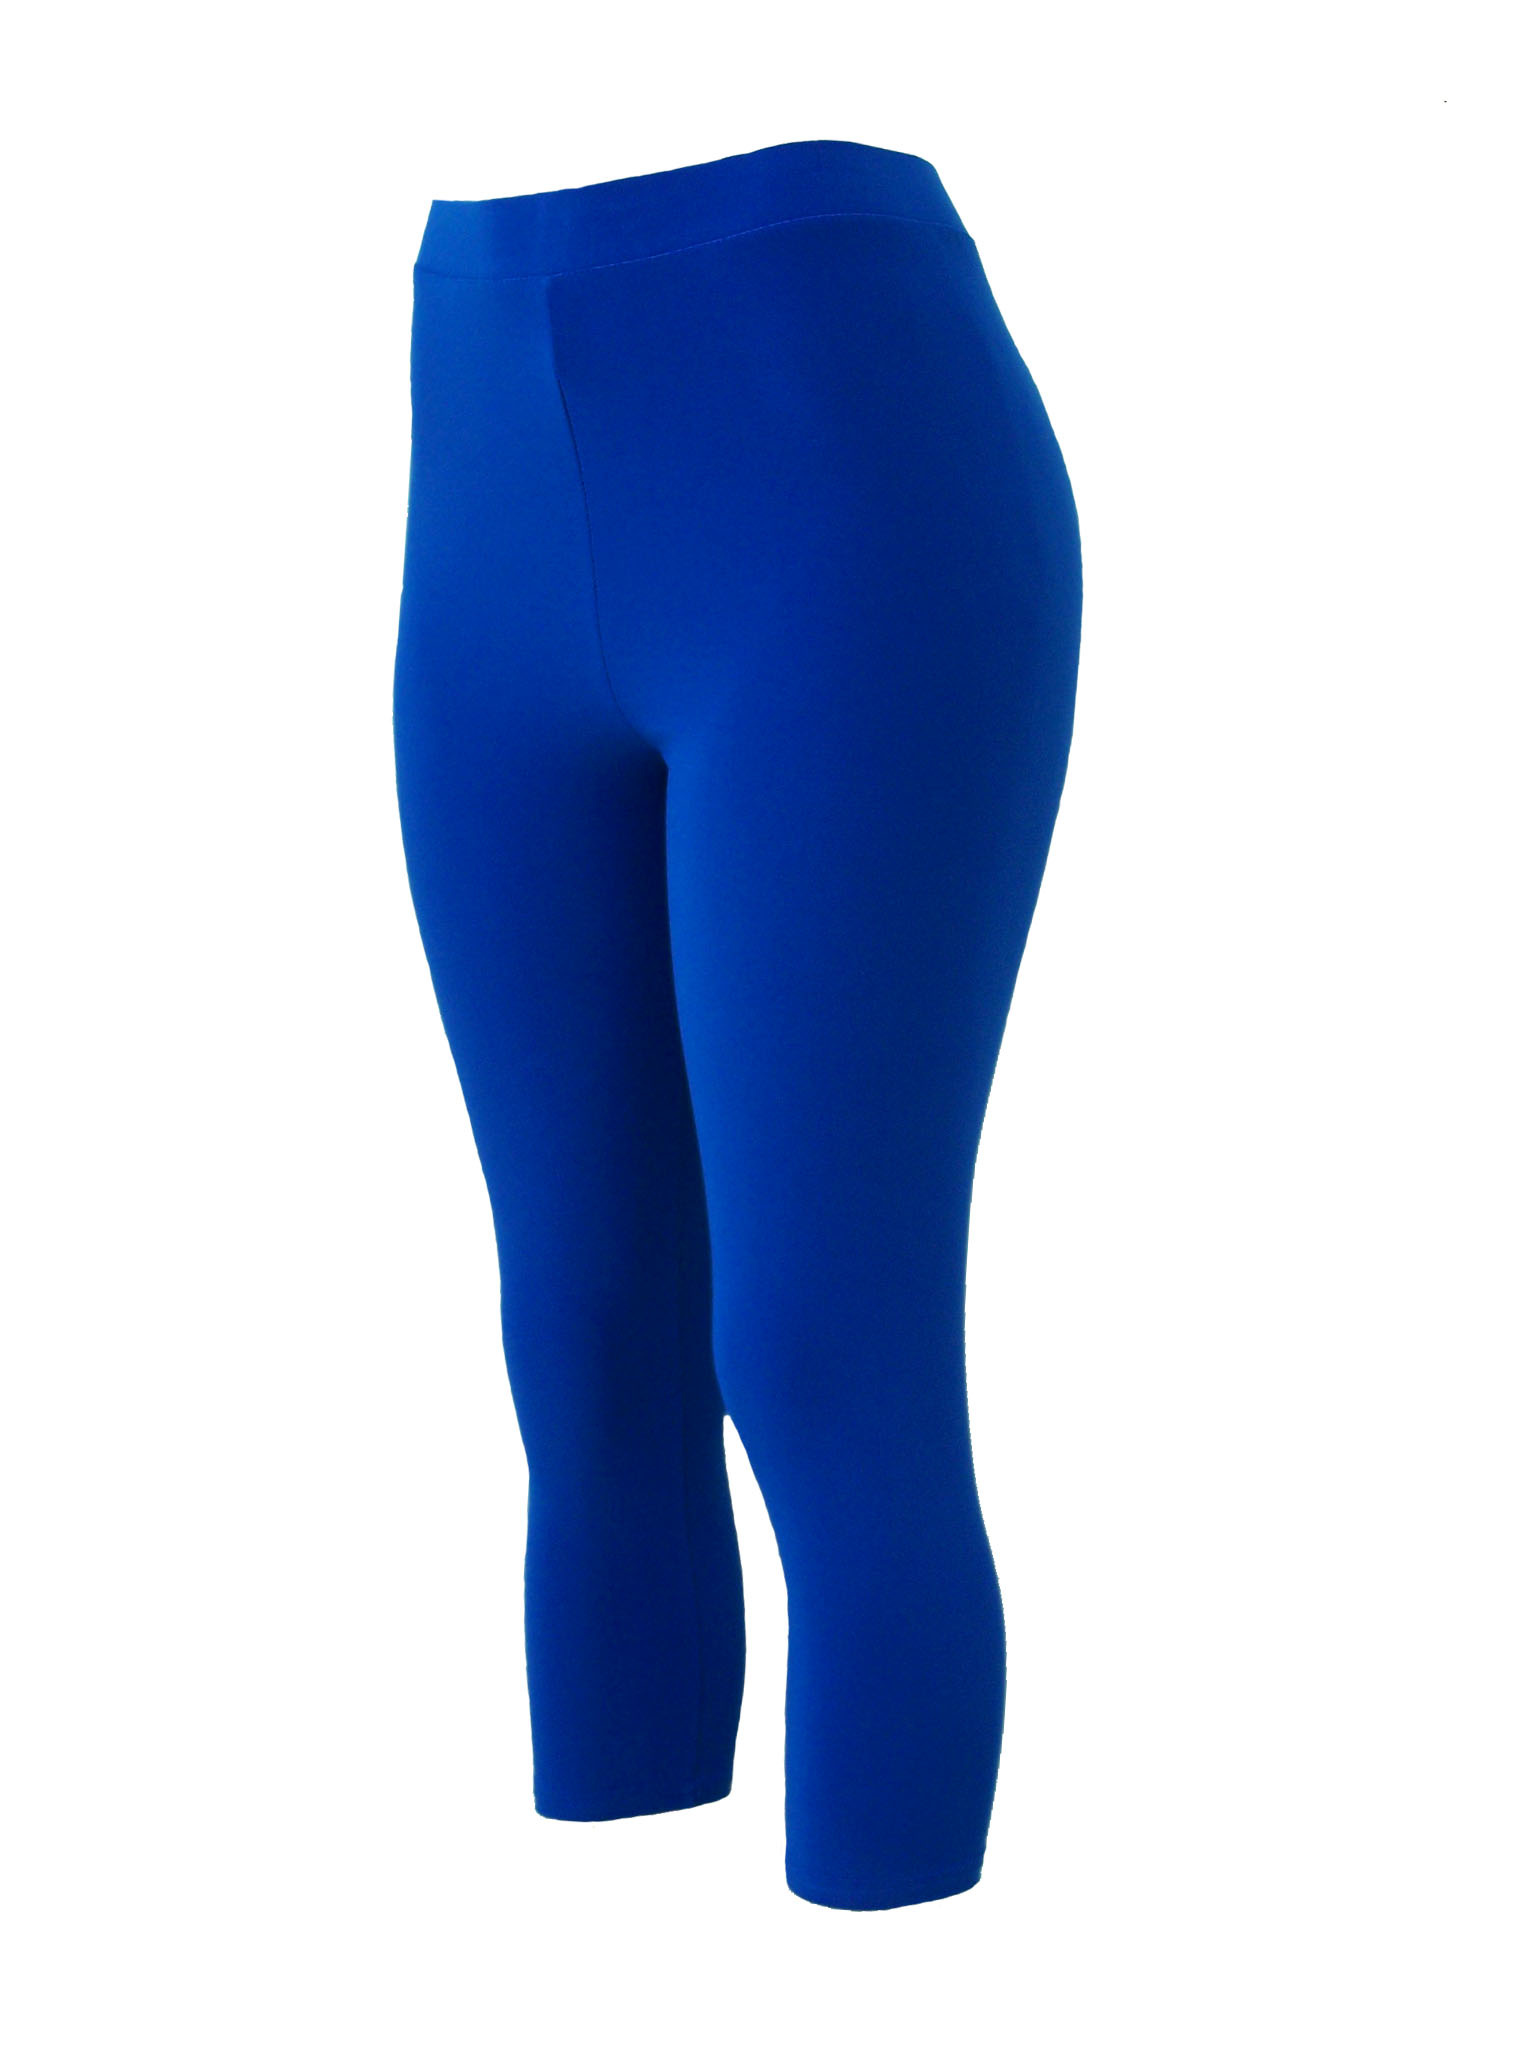 Valentina Signa Capri Lycra Legging - 5 Colors Available